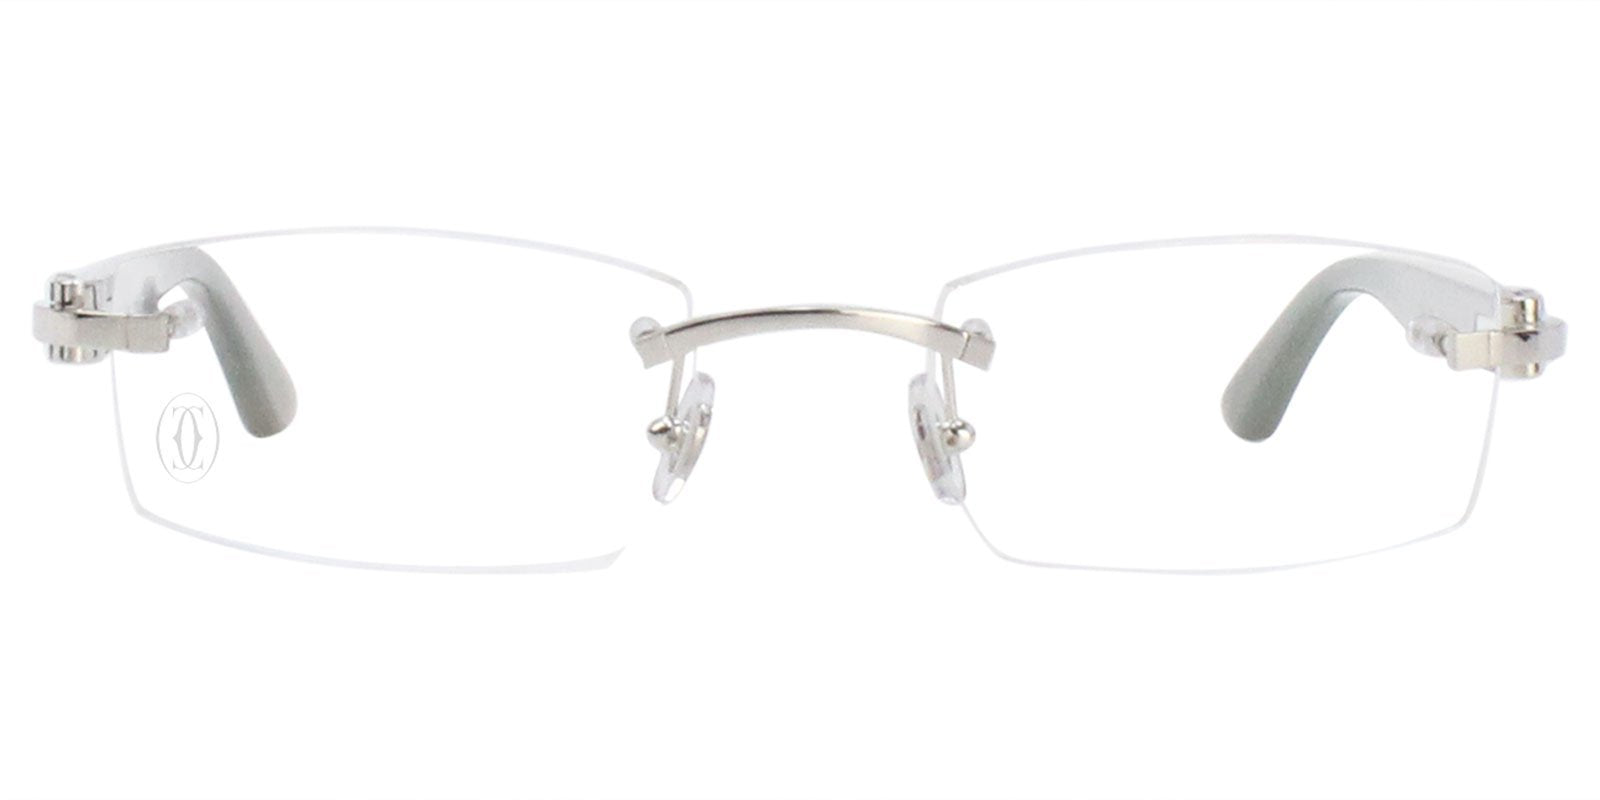 Cartier - C Decor Silver Rimless Unisex Eyeglasses - 51mm-Eyeglasses-Designer Eyes